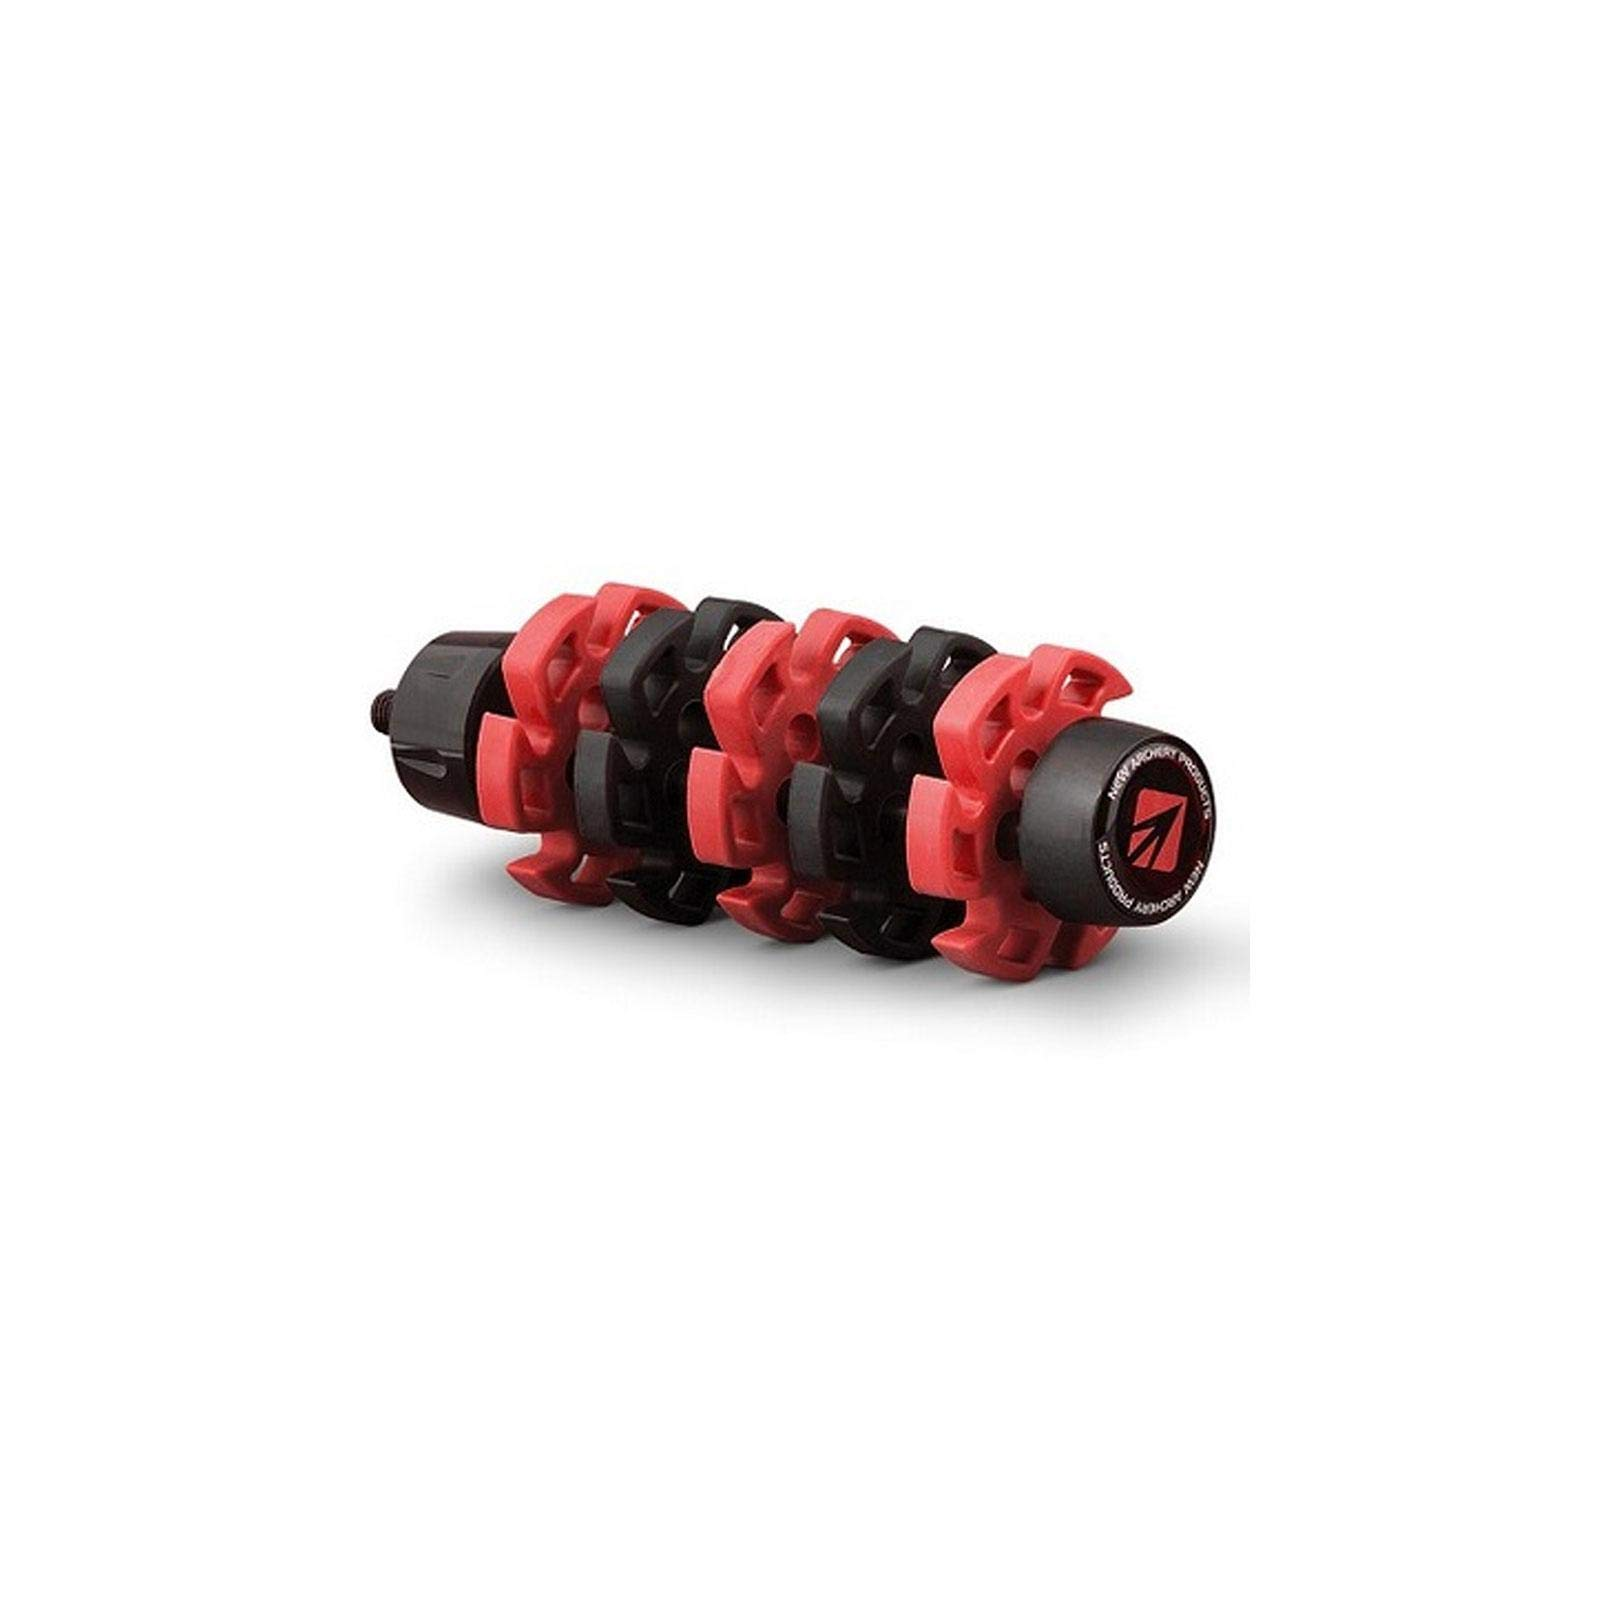 NAP Red Apache EQ Stabilizer w/Adjustable Dampeners